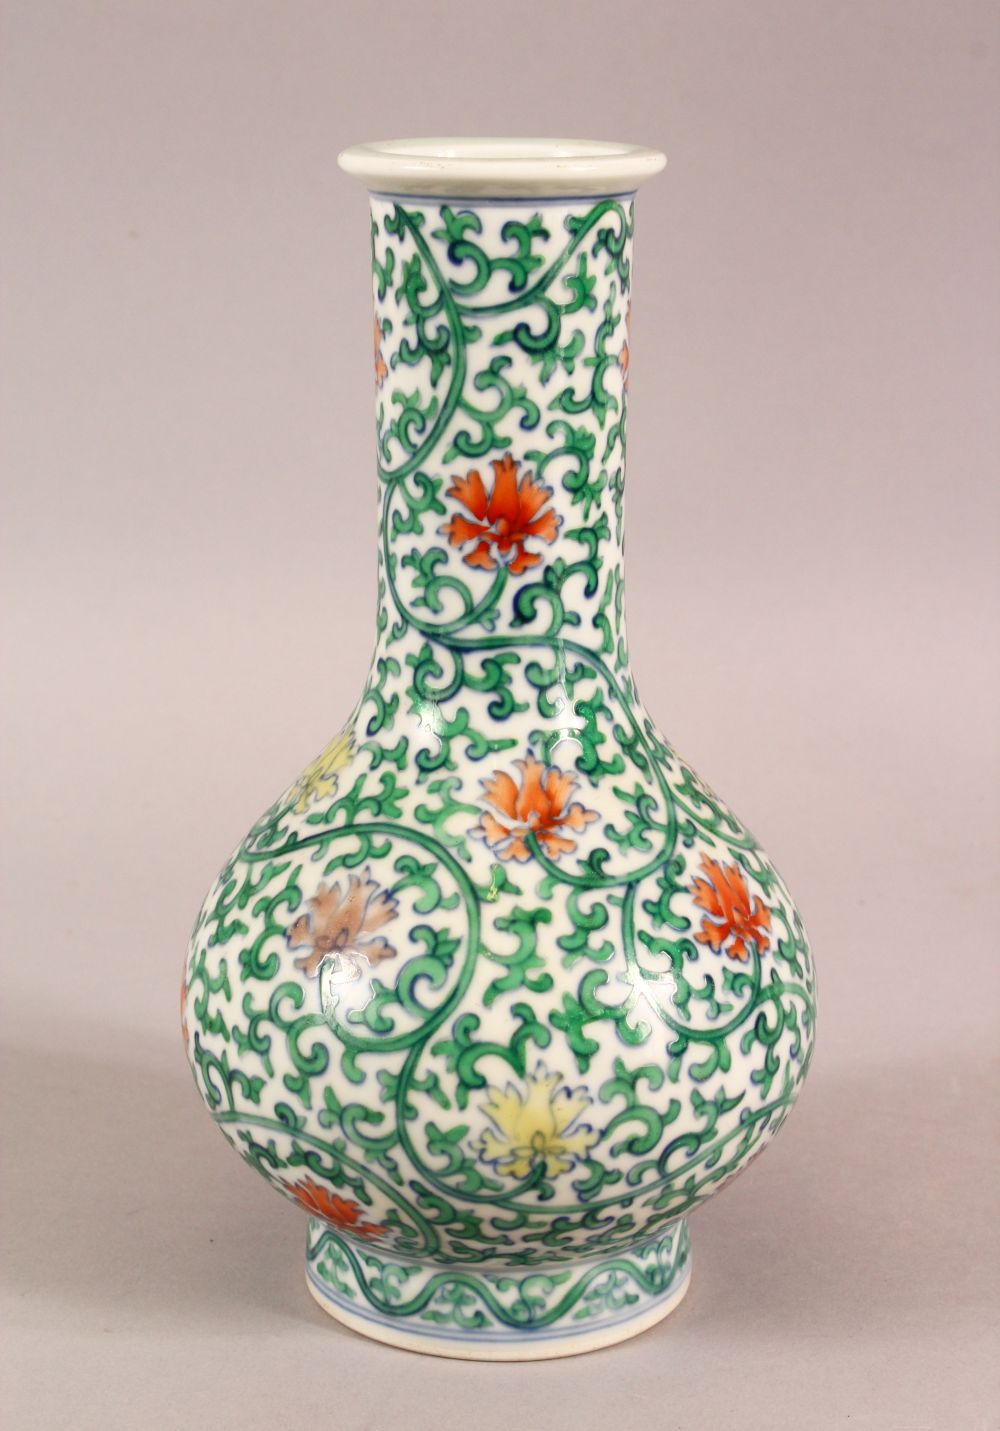 A SMALL CHINESE FAMILLE VERTE PORCELAIN VASE, profusely painted with flowers and vines, six